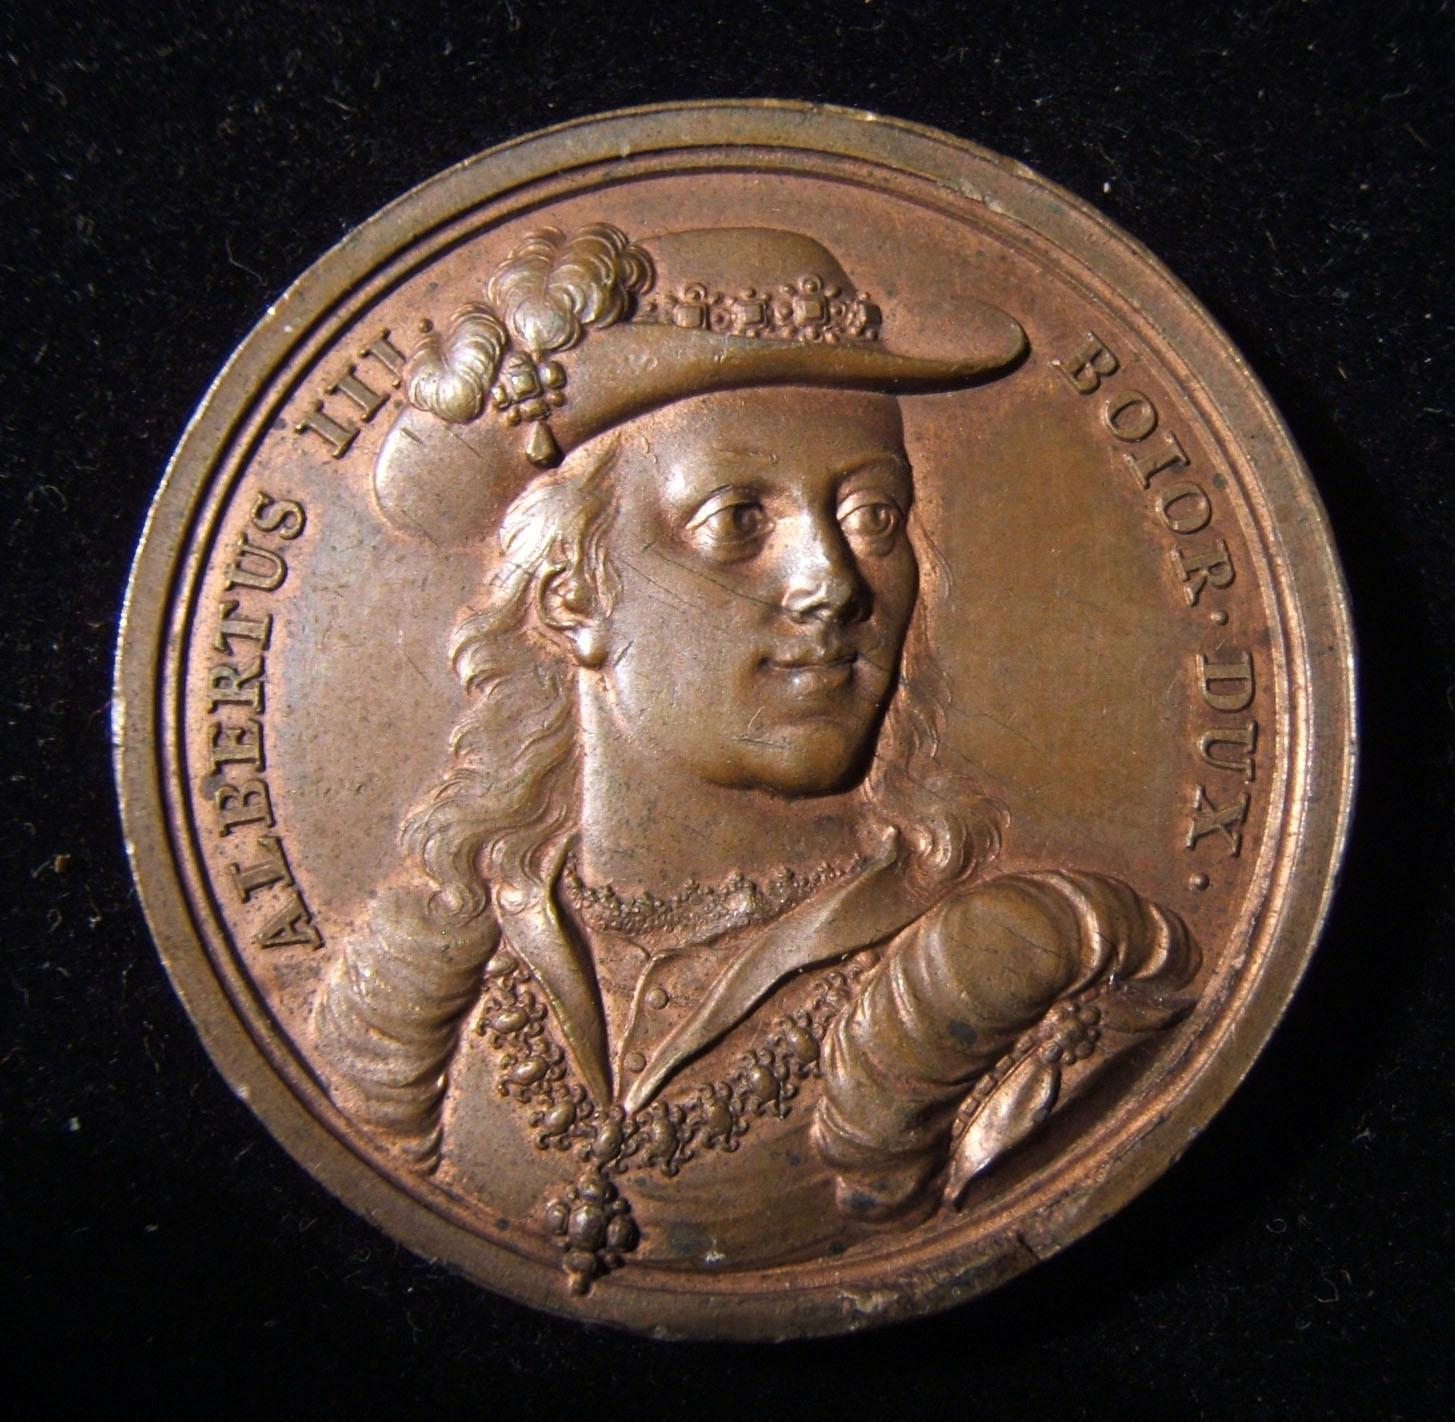 Germany: Albrecht III der Fromme, Duke Bavaria-Munich copper medal by Schega